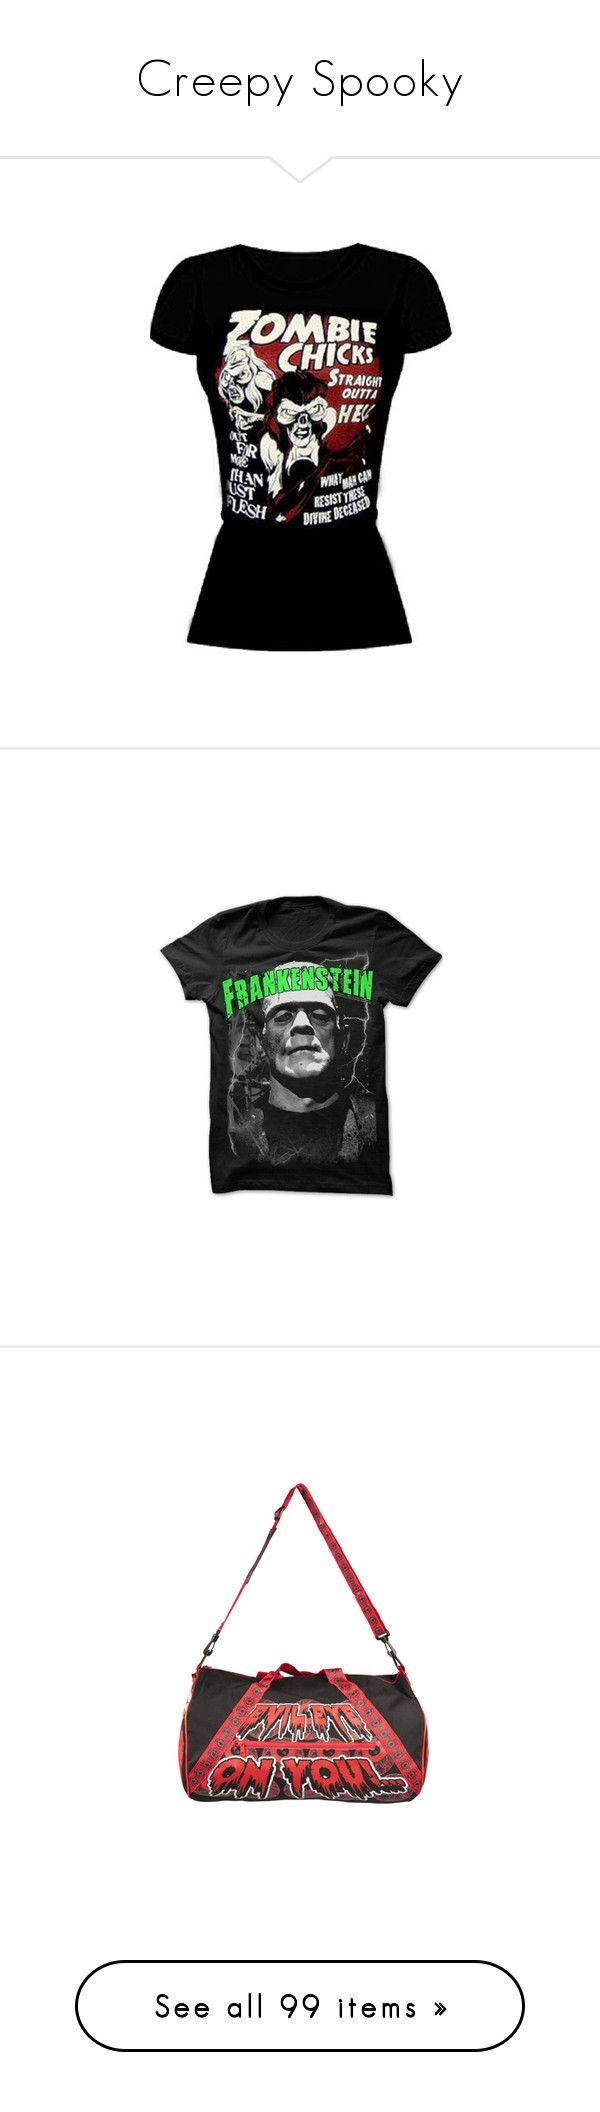 """""""Creepy Spooky"""" by lolabourbon ❤ liked on Polyvore featuring tops, shirts, t-shirts, zombie, paul frank t shirt, paul frank shirt, paul frank tee, paul frank, tee-shirt and bags"""